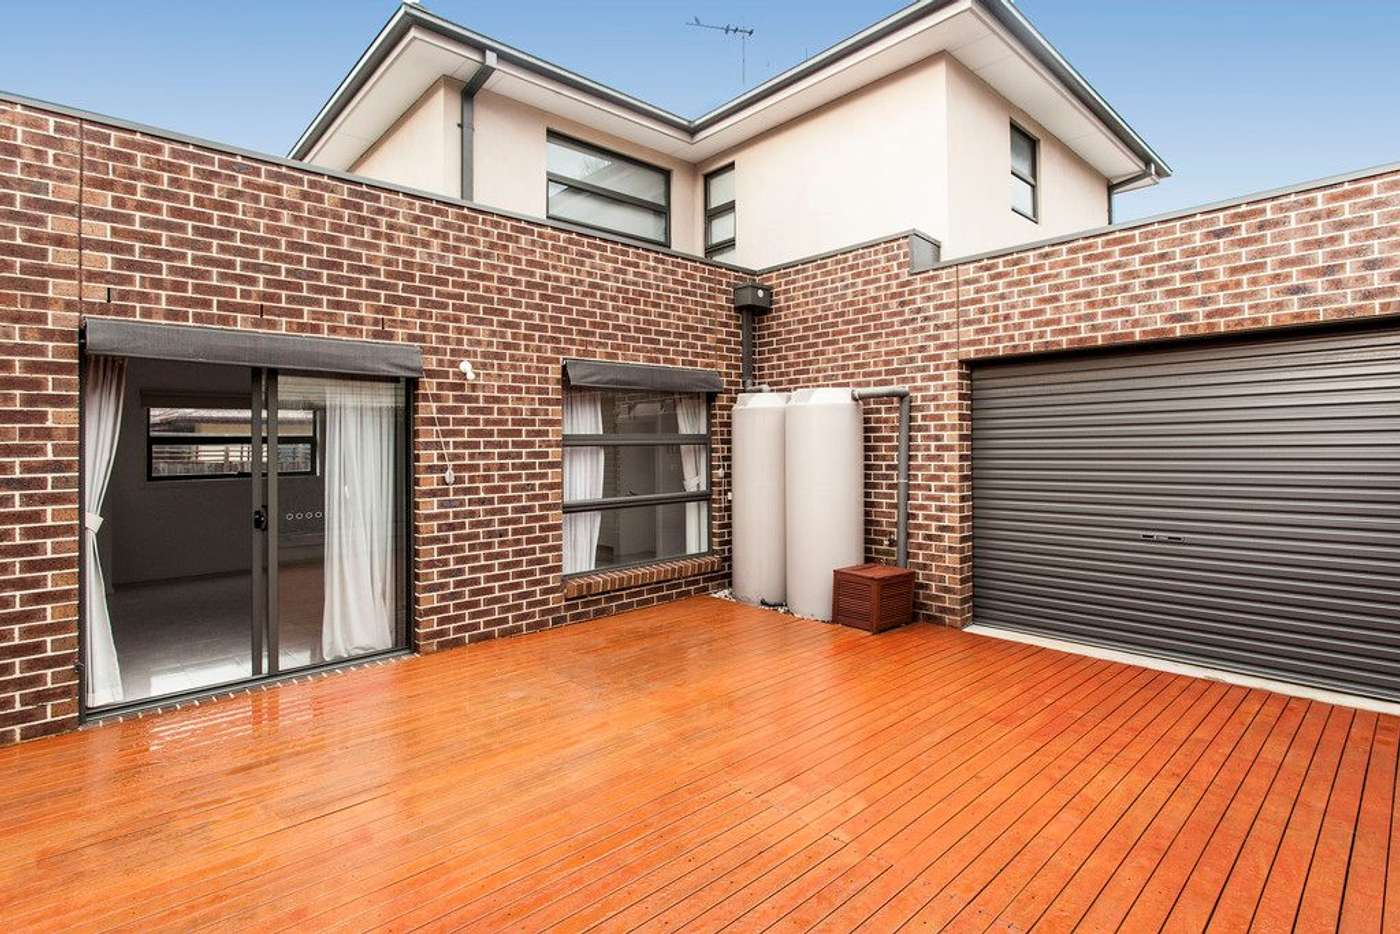 Seventh view of Homely townhouse listing, 1/7 Seventh Avenue, Dandenong VIC 3175